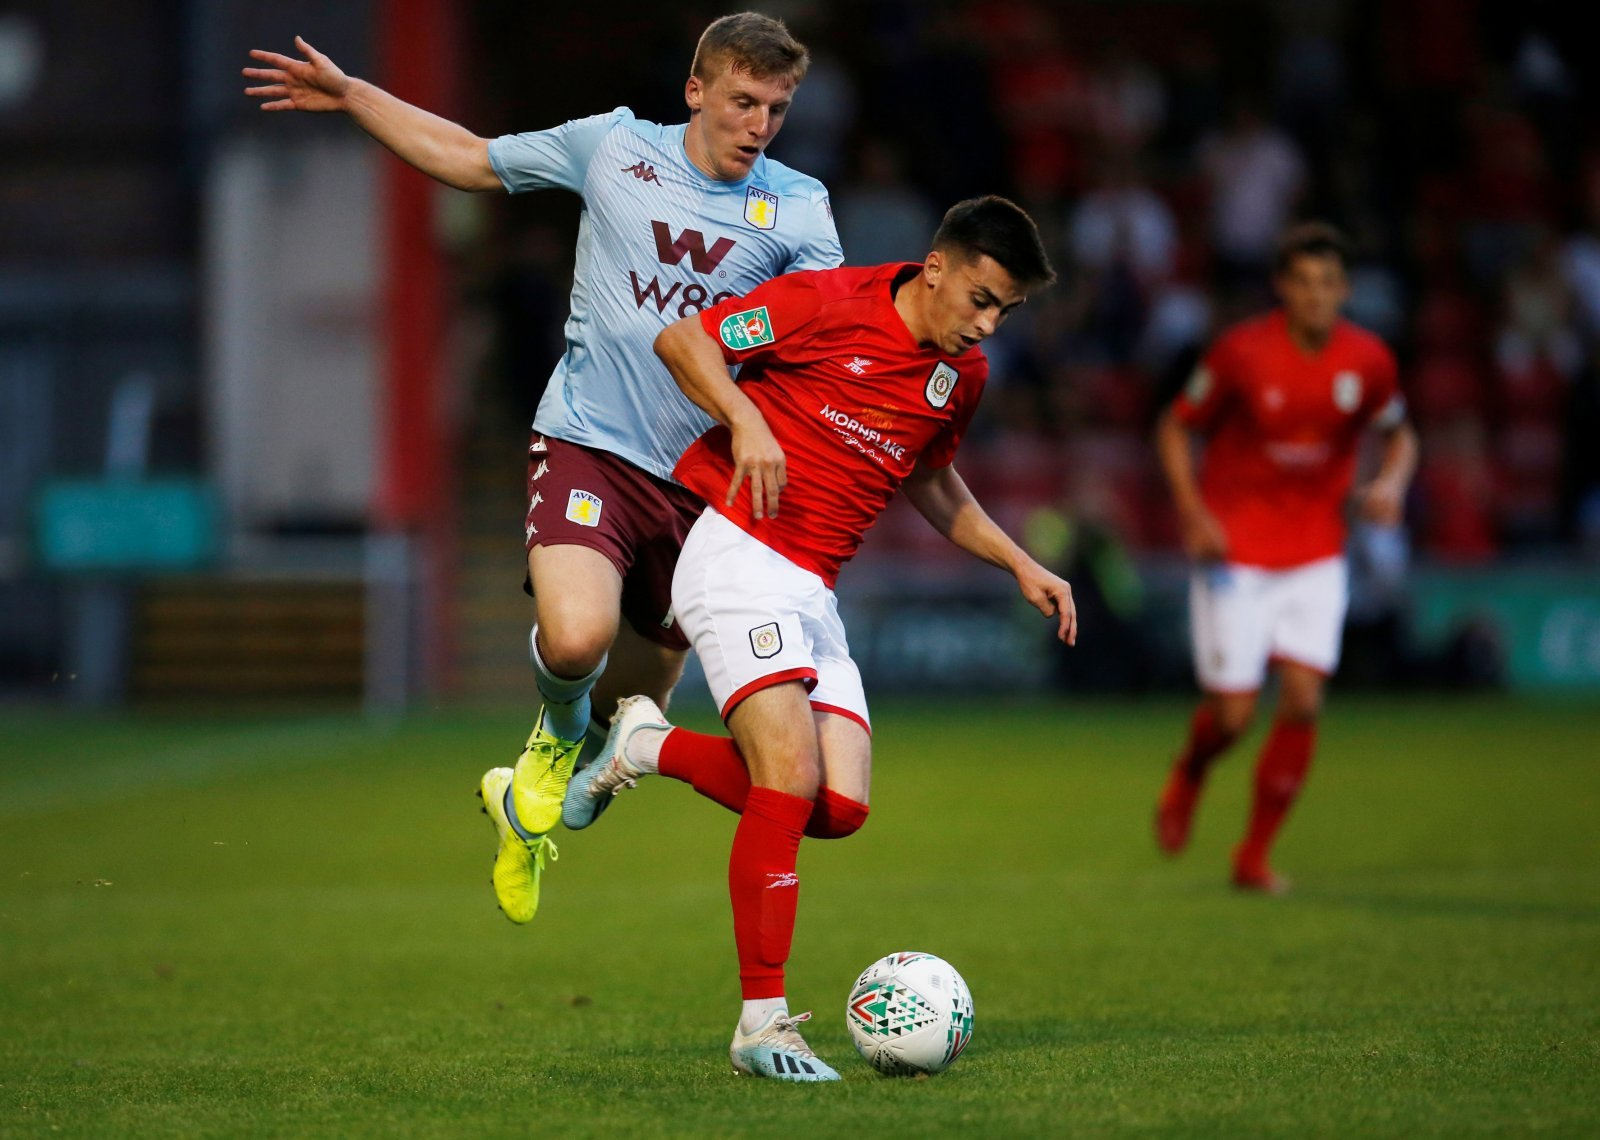 Aston Villa: Matt Targett to be available after the international break